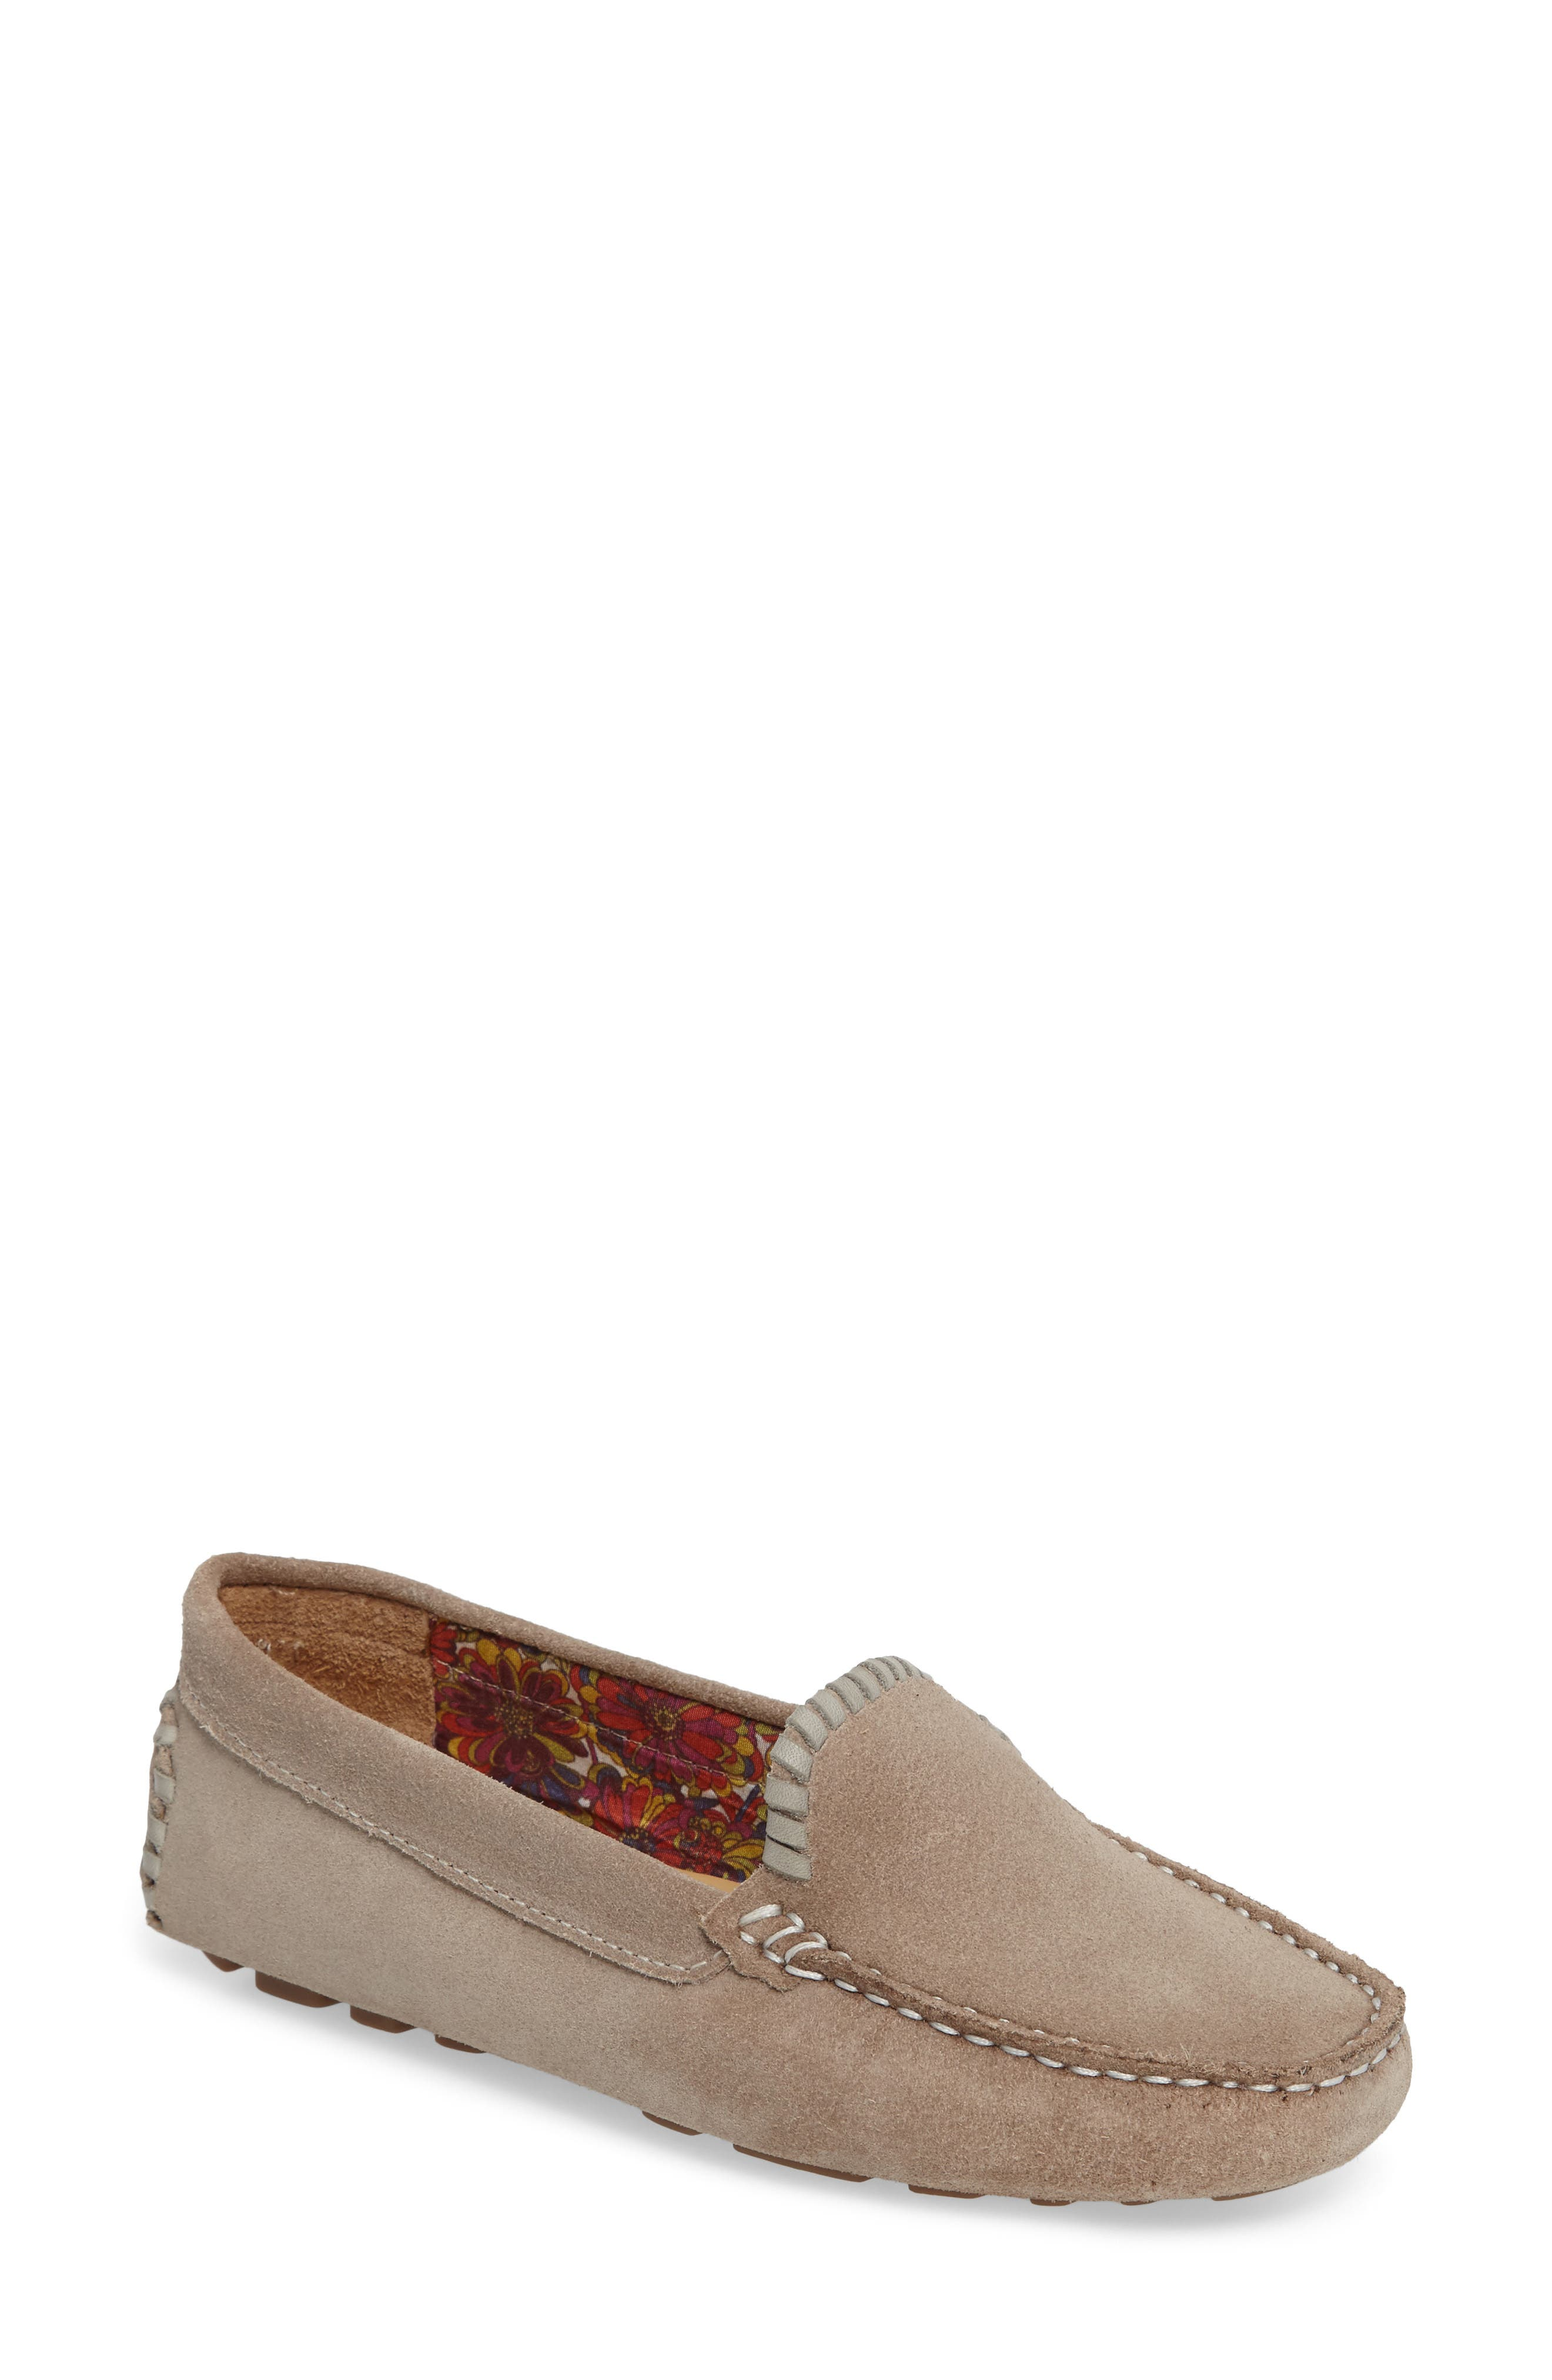 Taylor Driving Loafer,                         Main,                         color, Dove Grey Suede